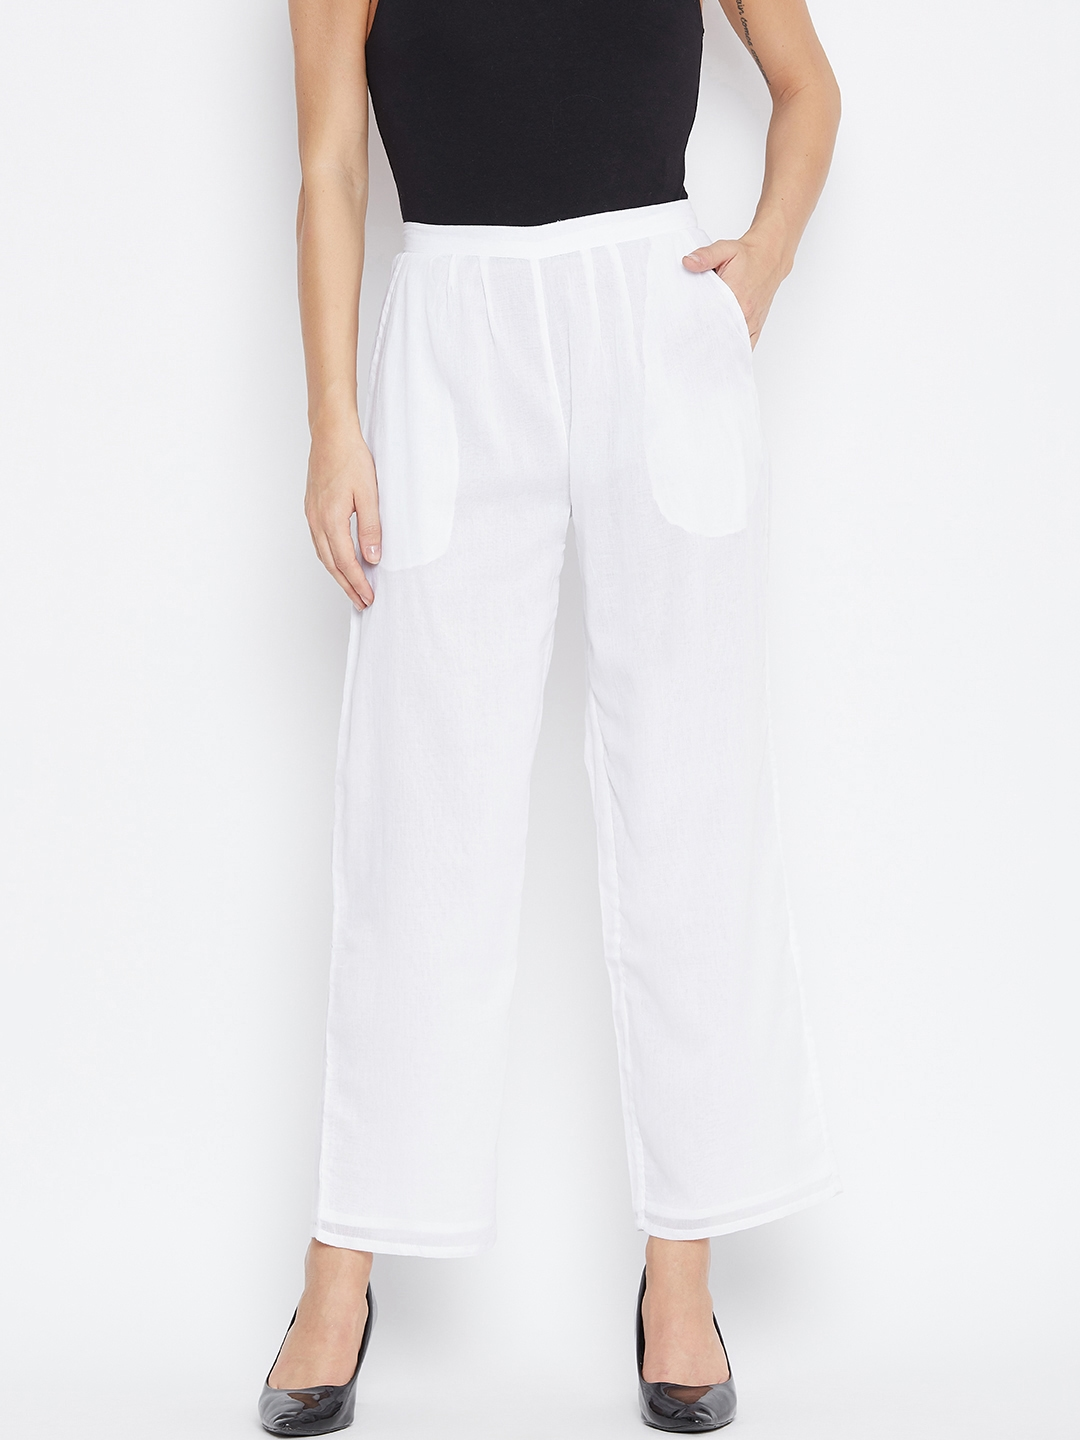 fabGLOBAL Women White Relaxed Slim Fit Solid Regular Trousers